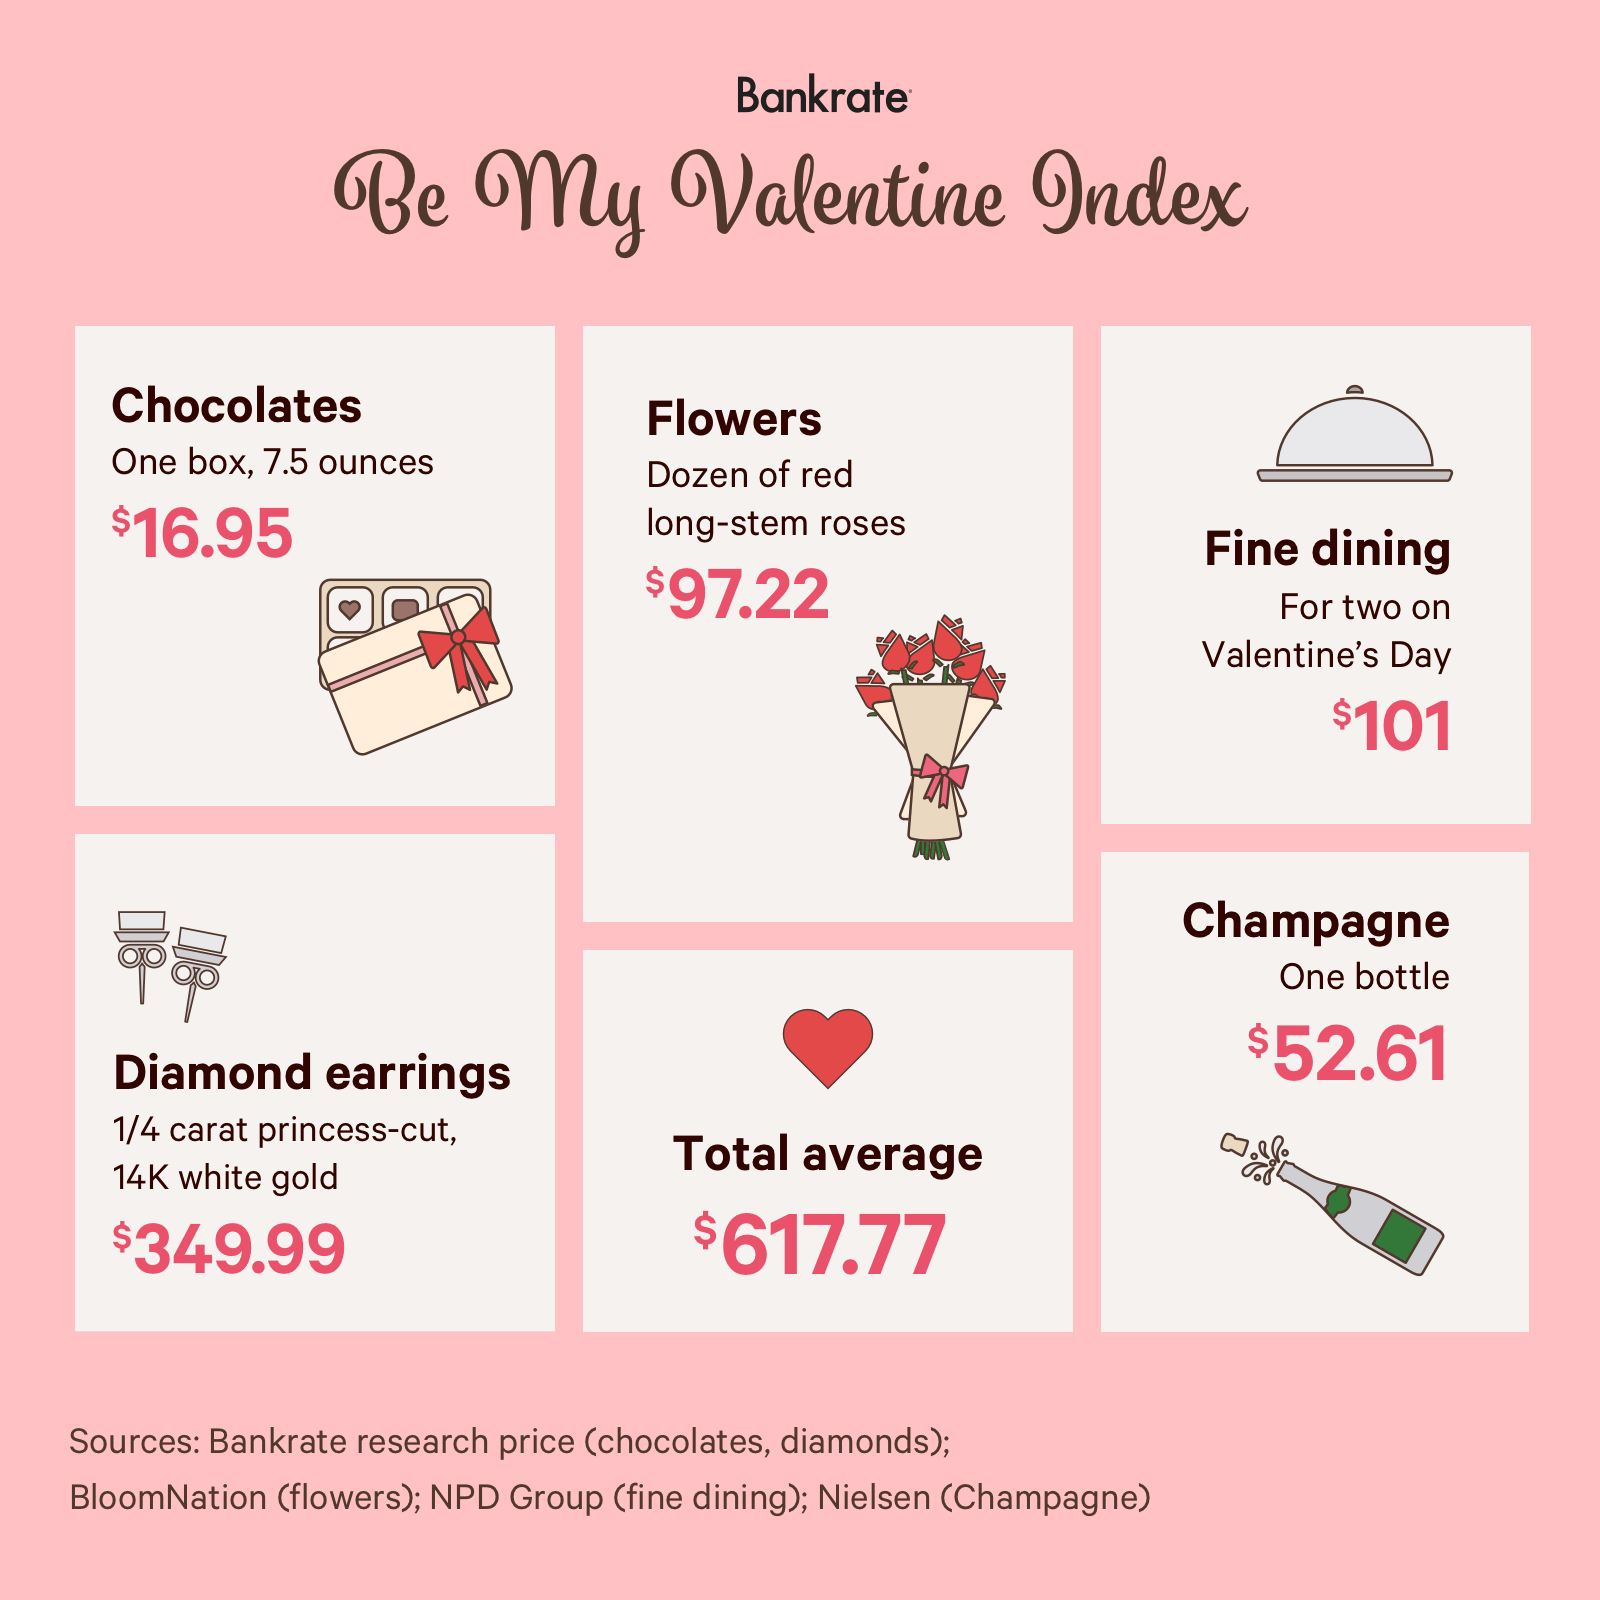 Bankrate's Be My Valentine Index Finds The High Cost Of Love